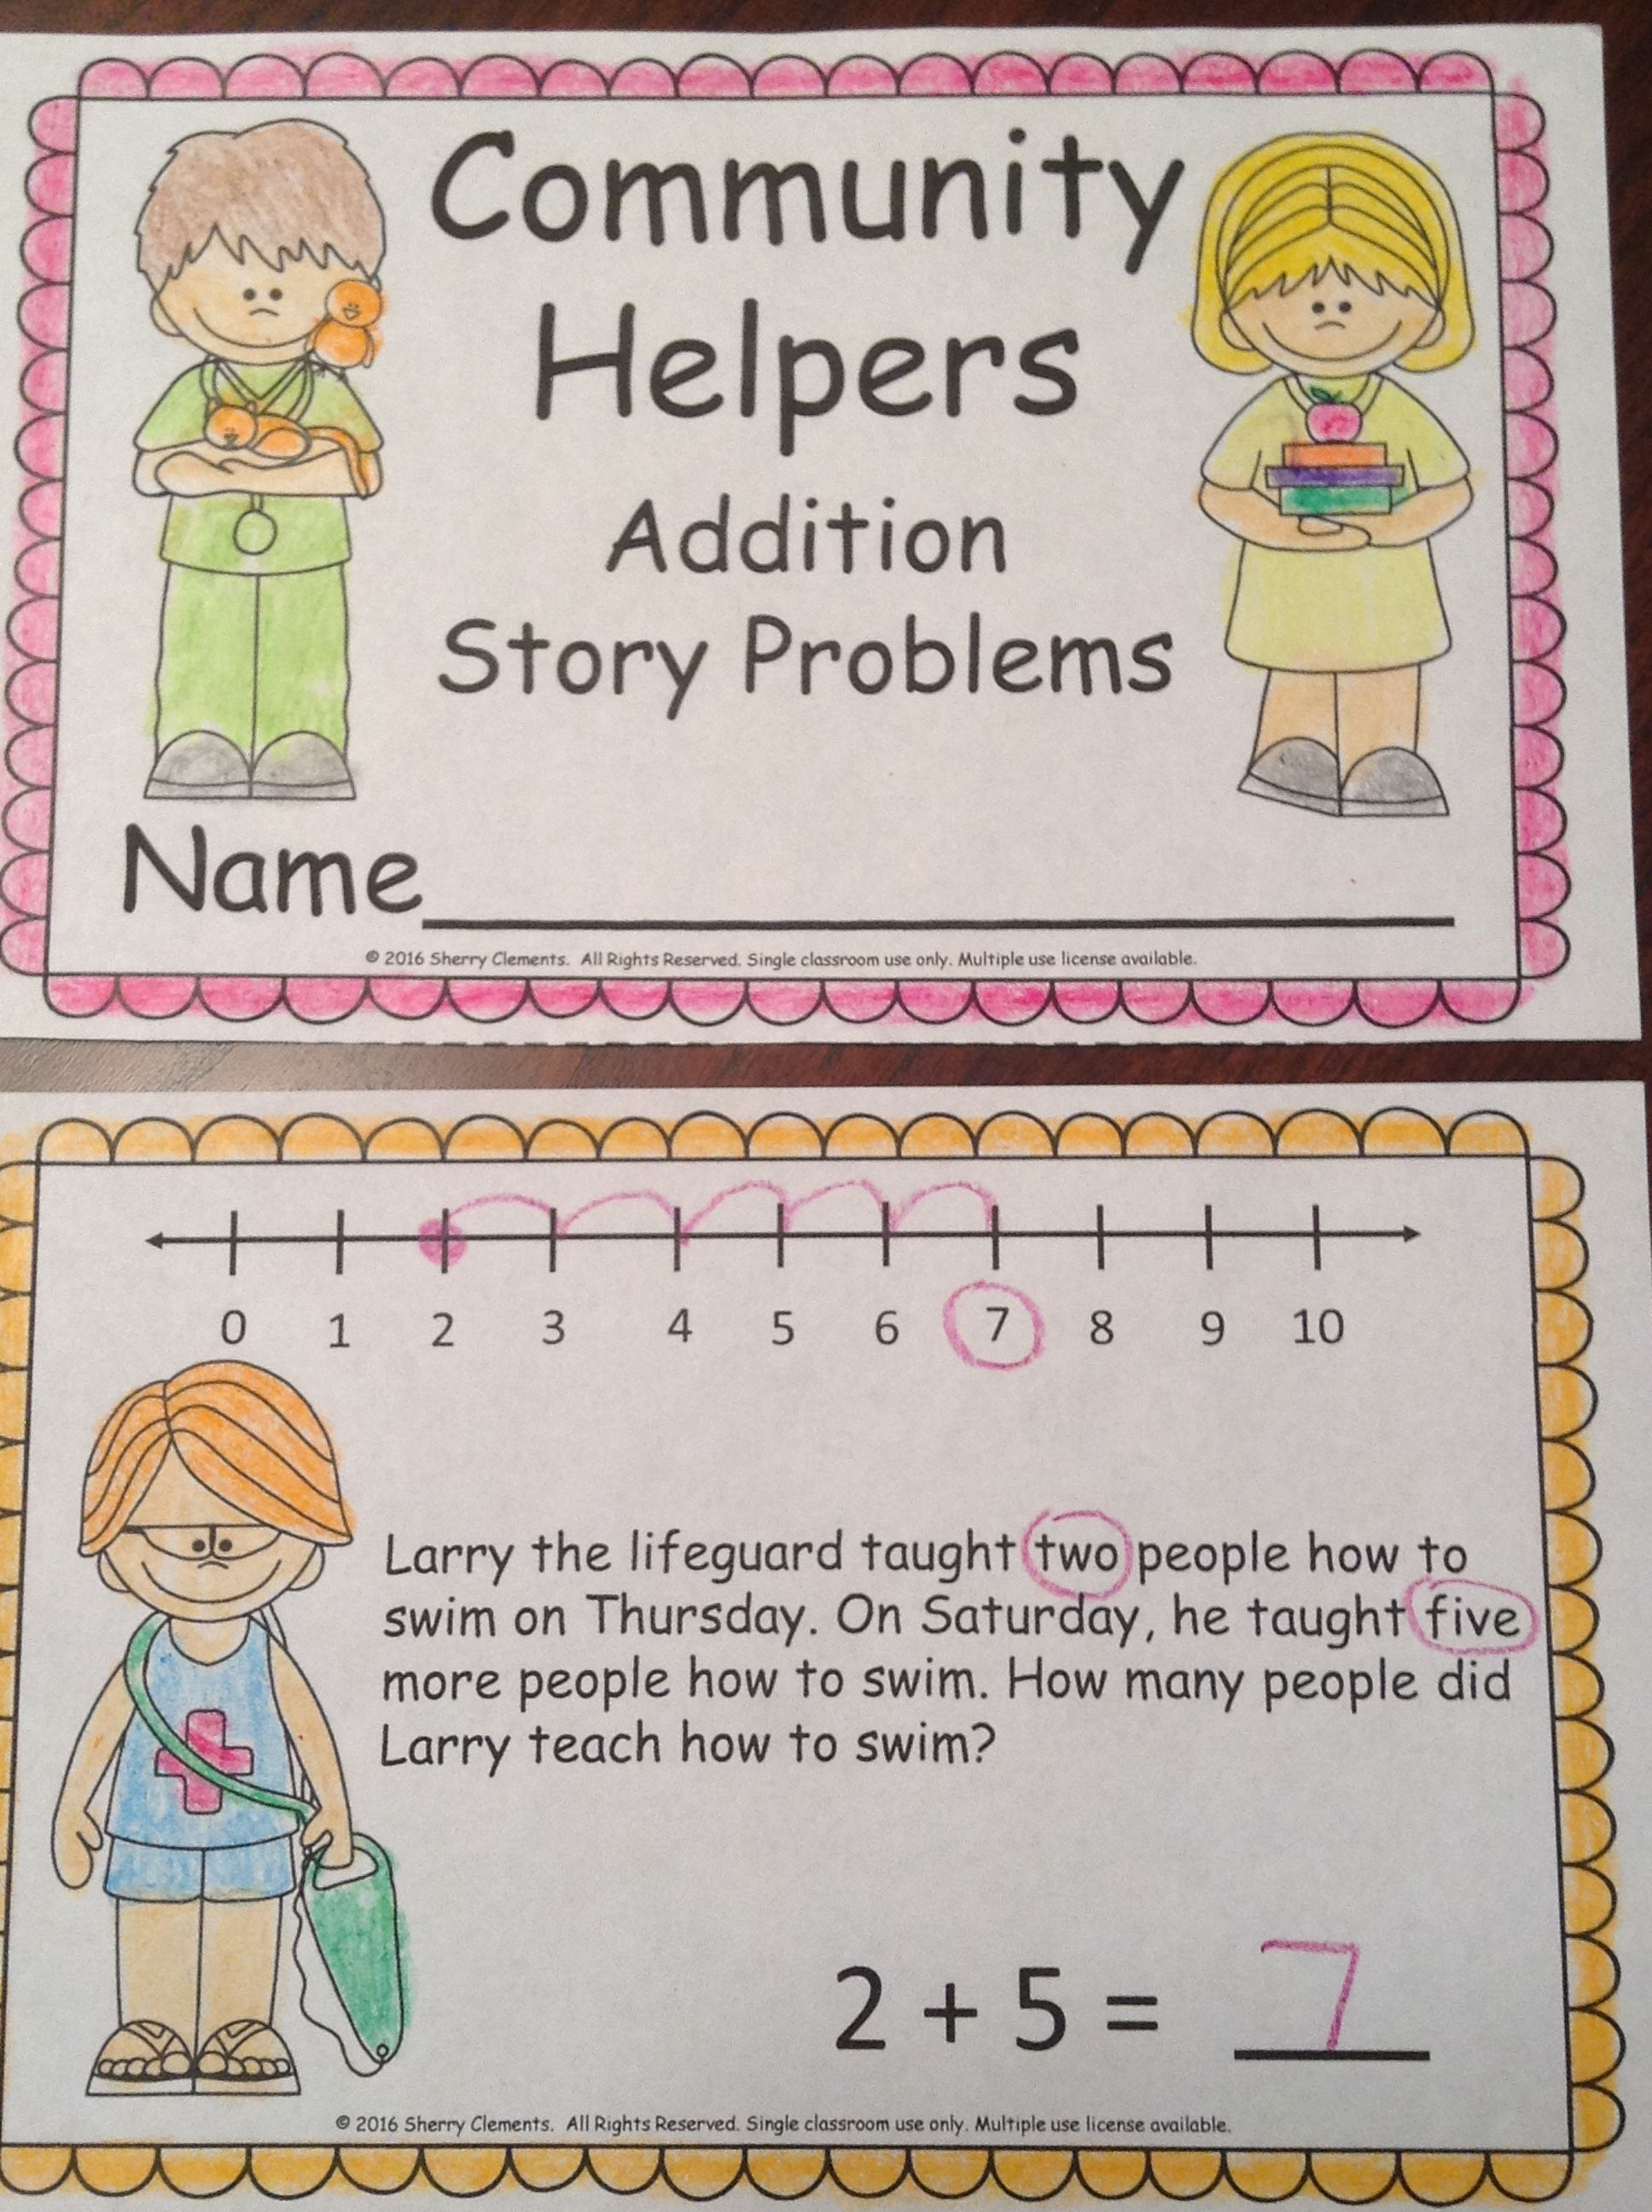 Community Helpers Addition Story Problems Book